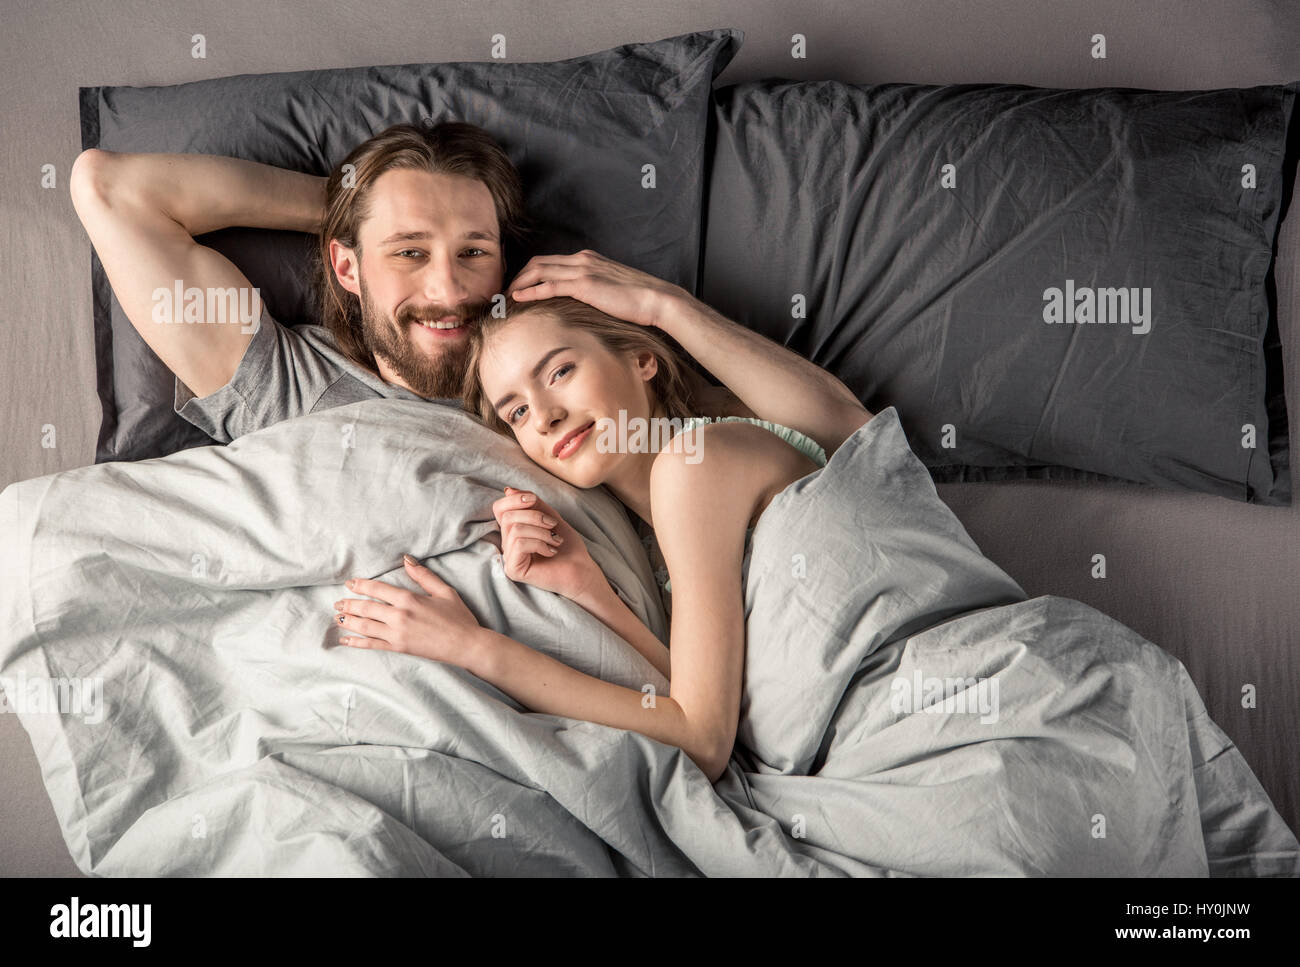 Overhead view of young happy couple in love lying in bed - Stock Image